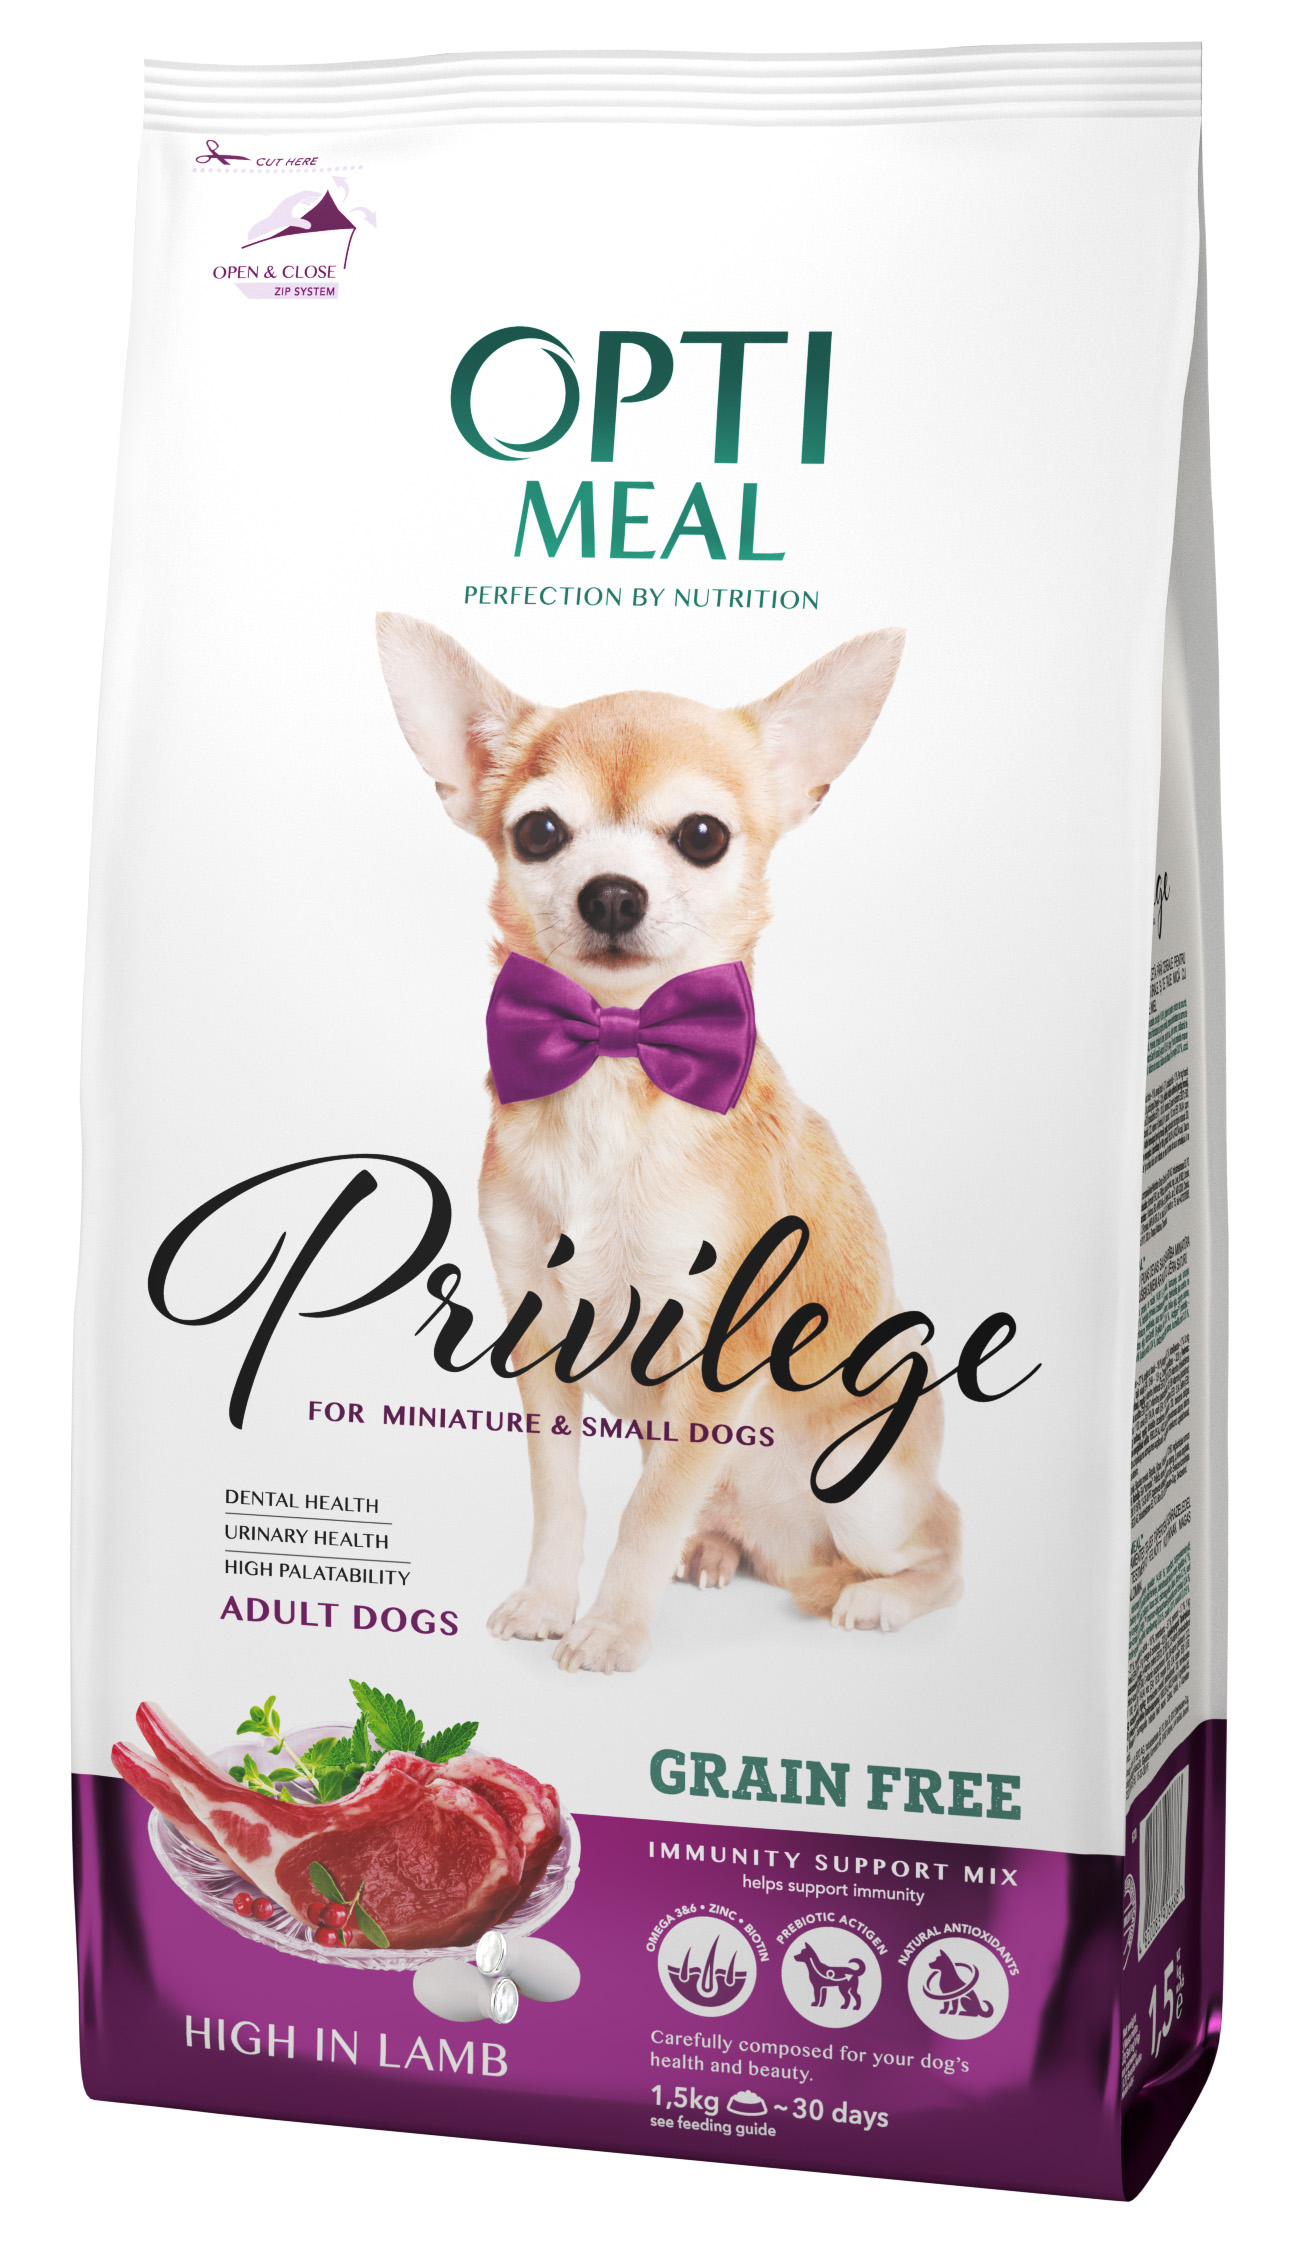 New product. OPTIMEAL PRIVILEGE FOR SMALL AND TINY DOGS